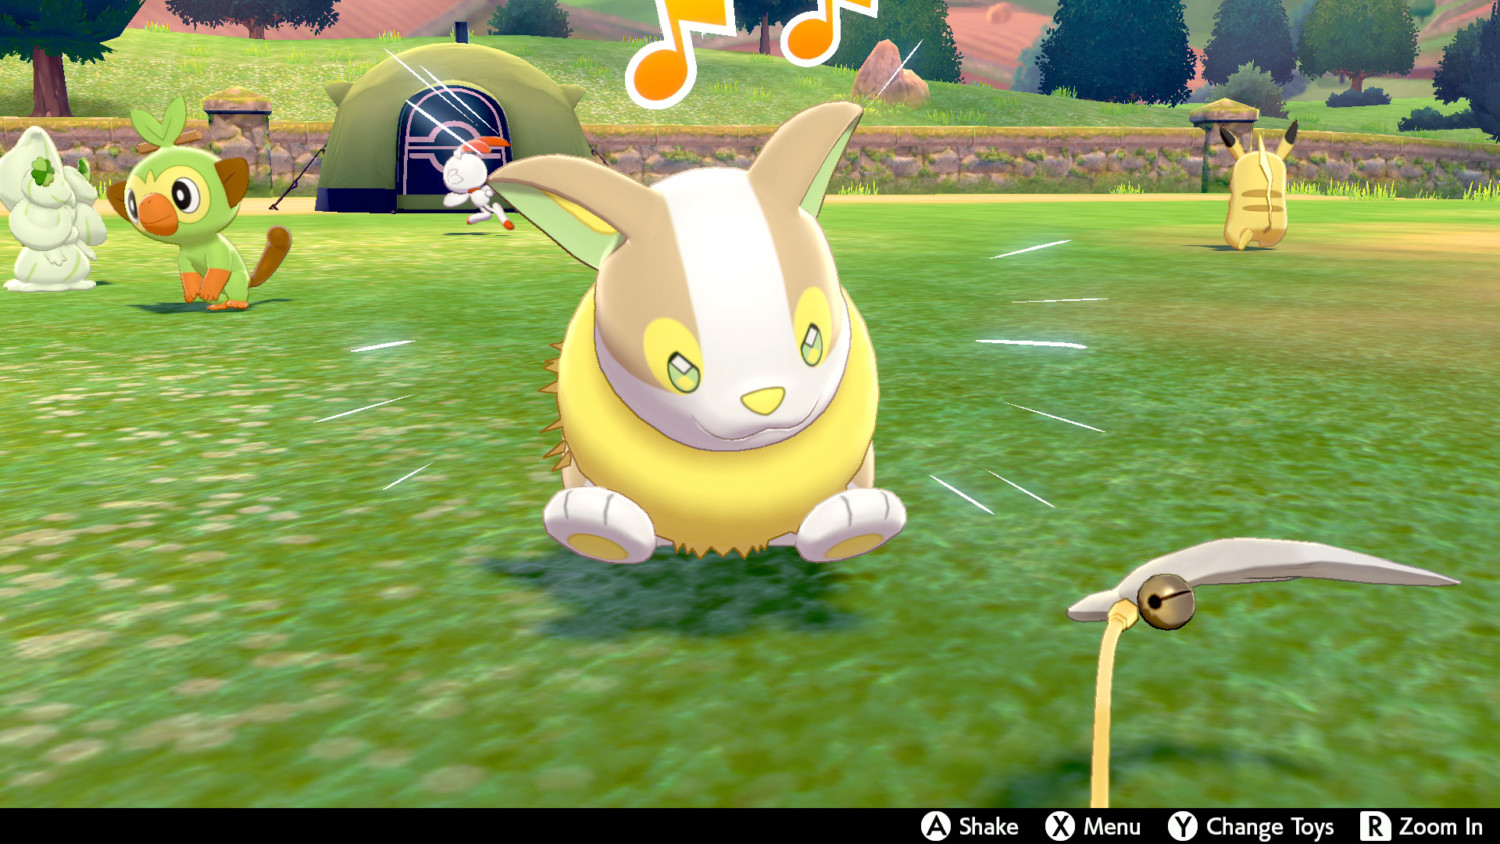 144 Moves Removed From Pokemon Sword And Shield